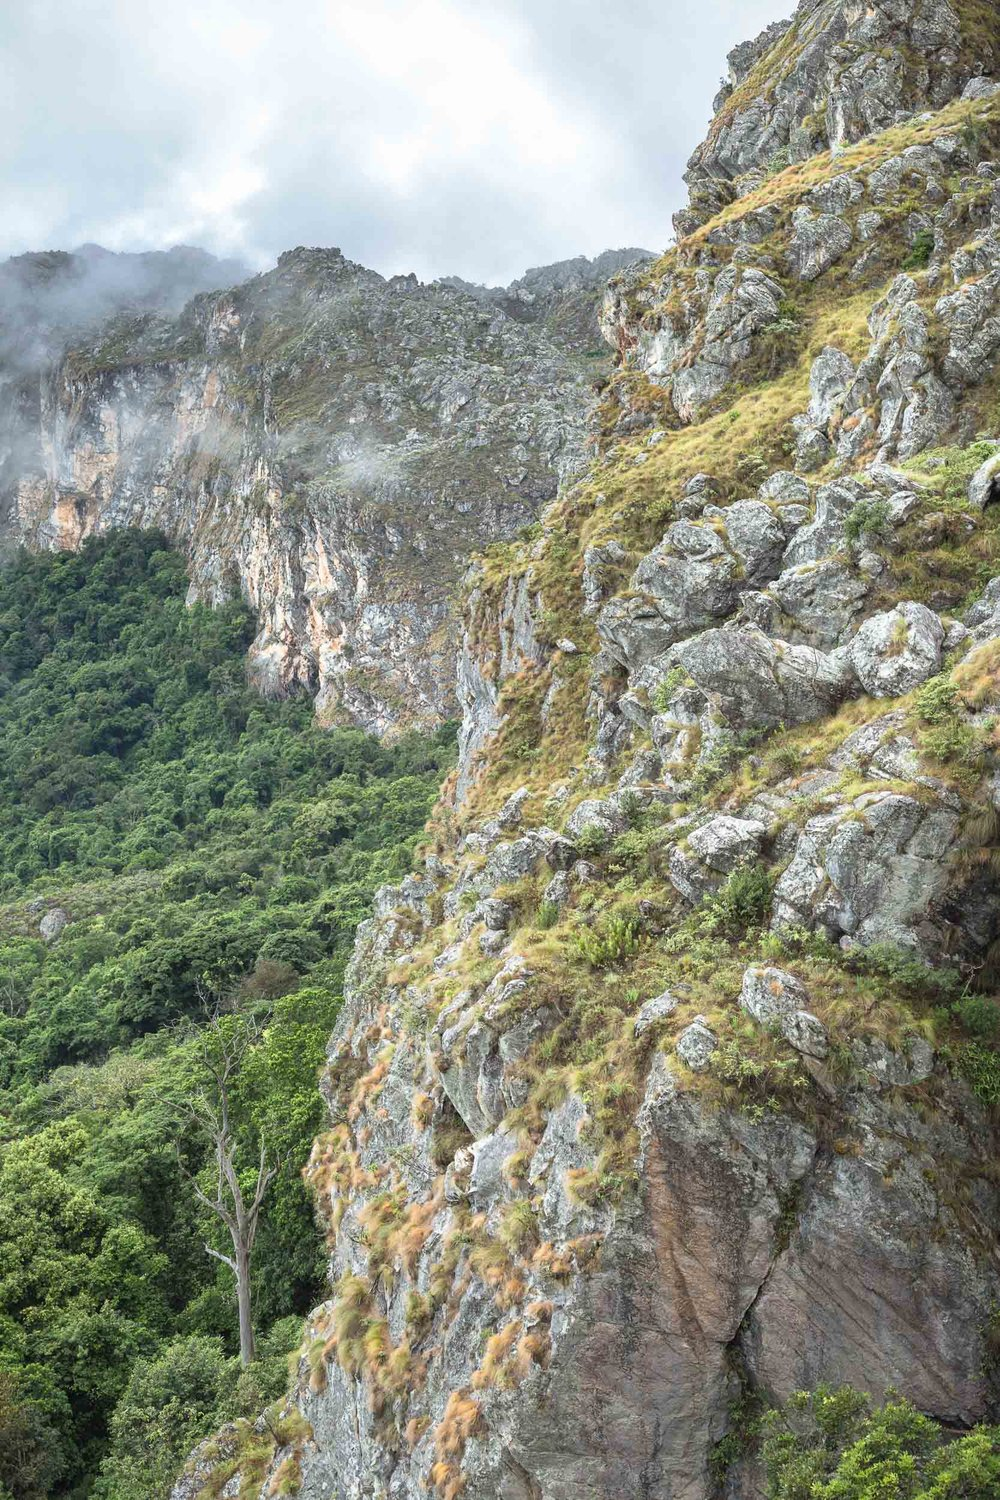 Bailey's Folly, a direct route up the Chimanimani Mountains.